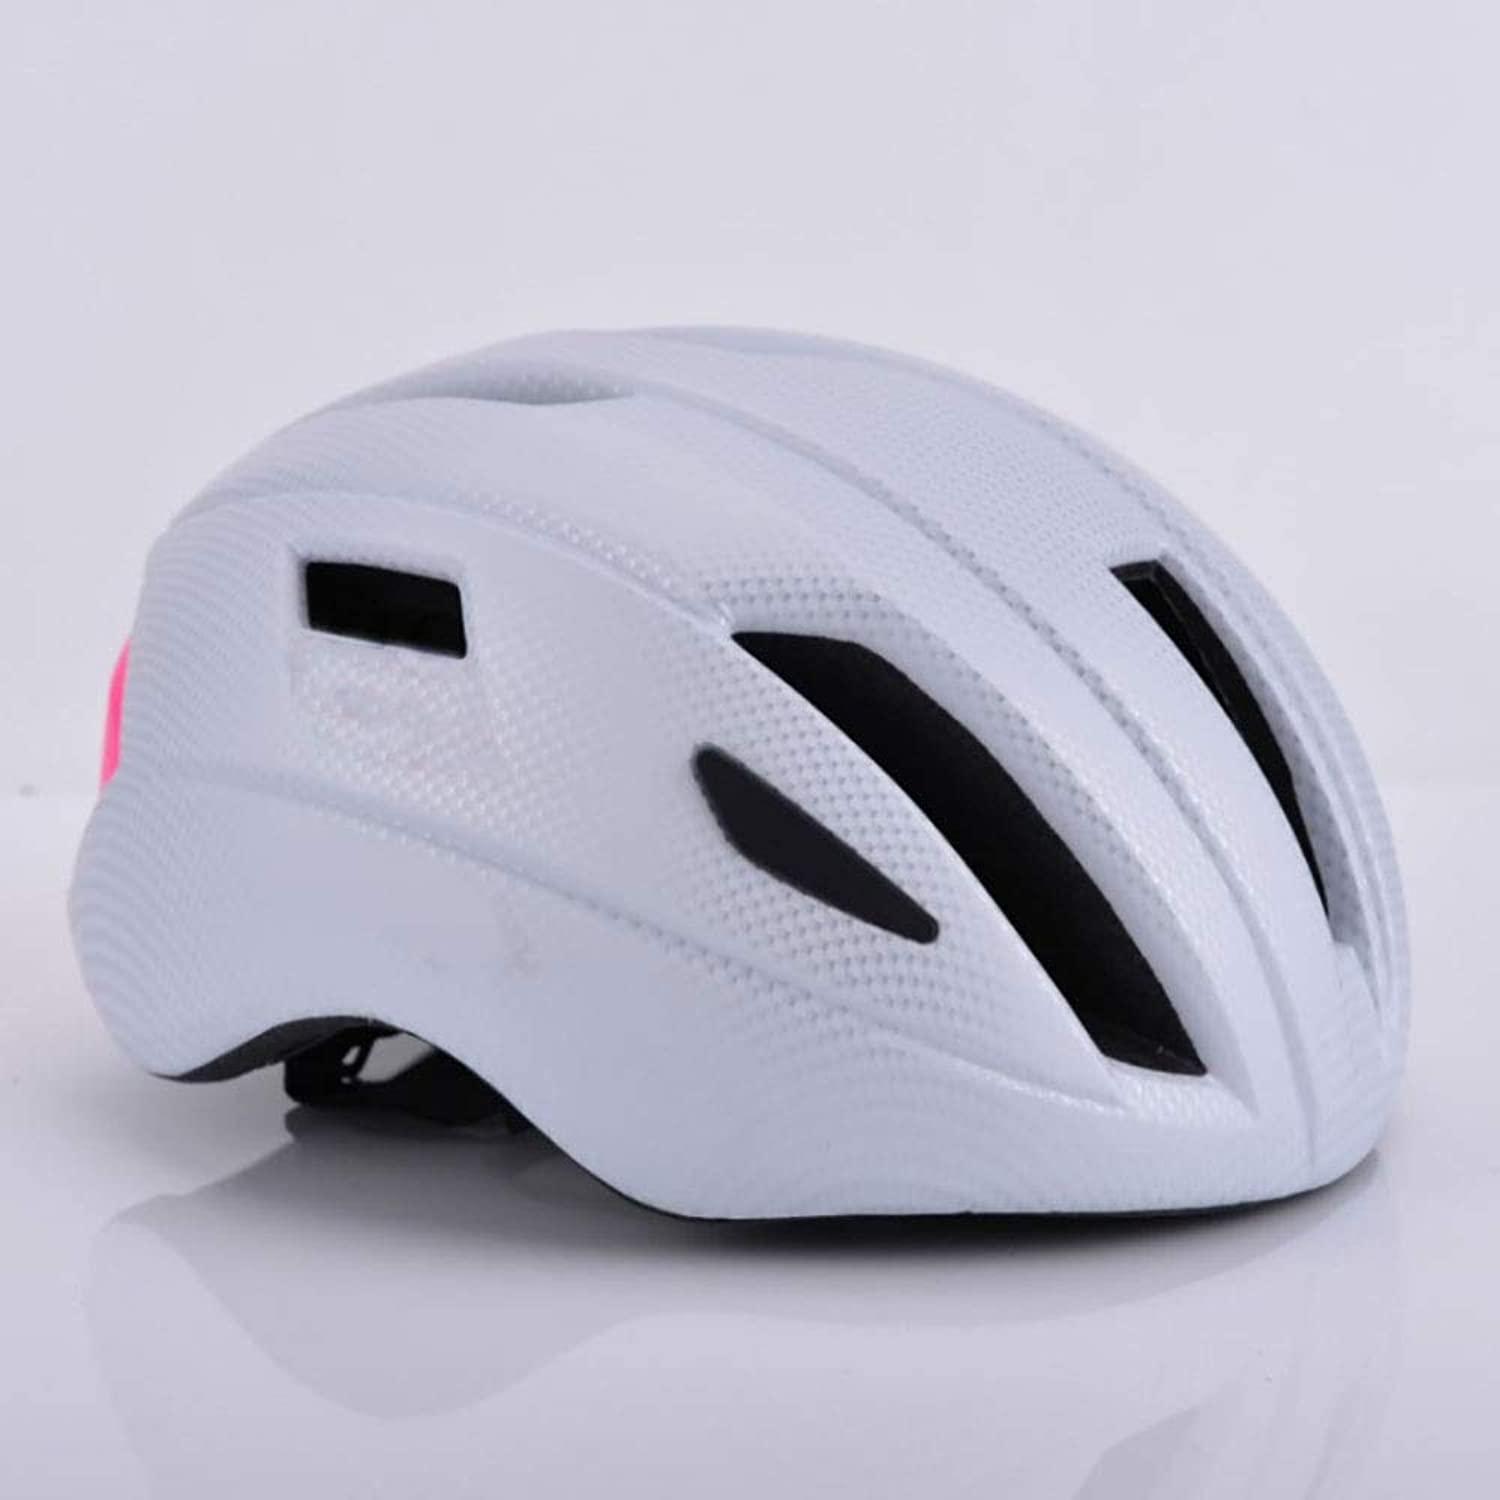 Songlin@yuan New Bicycle Safety Helmet Bicycle Mountain Bike Off-Road Vehicle Road Head Cycling Helmet Sports Equipment Predection